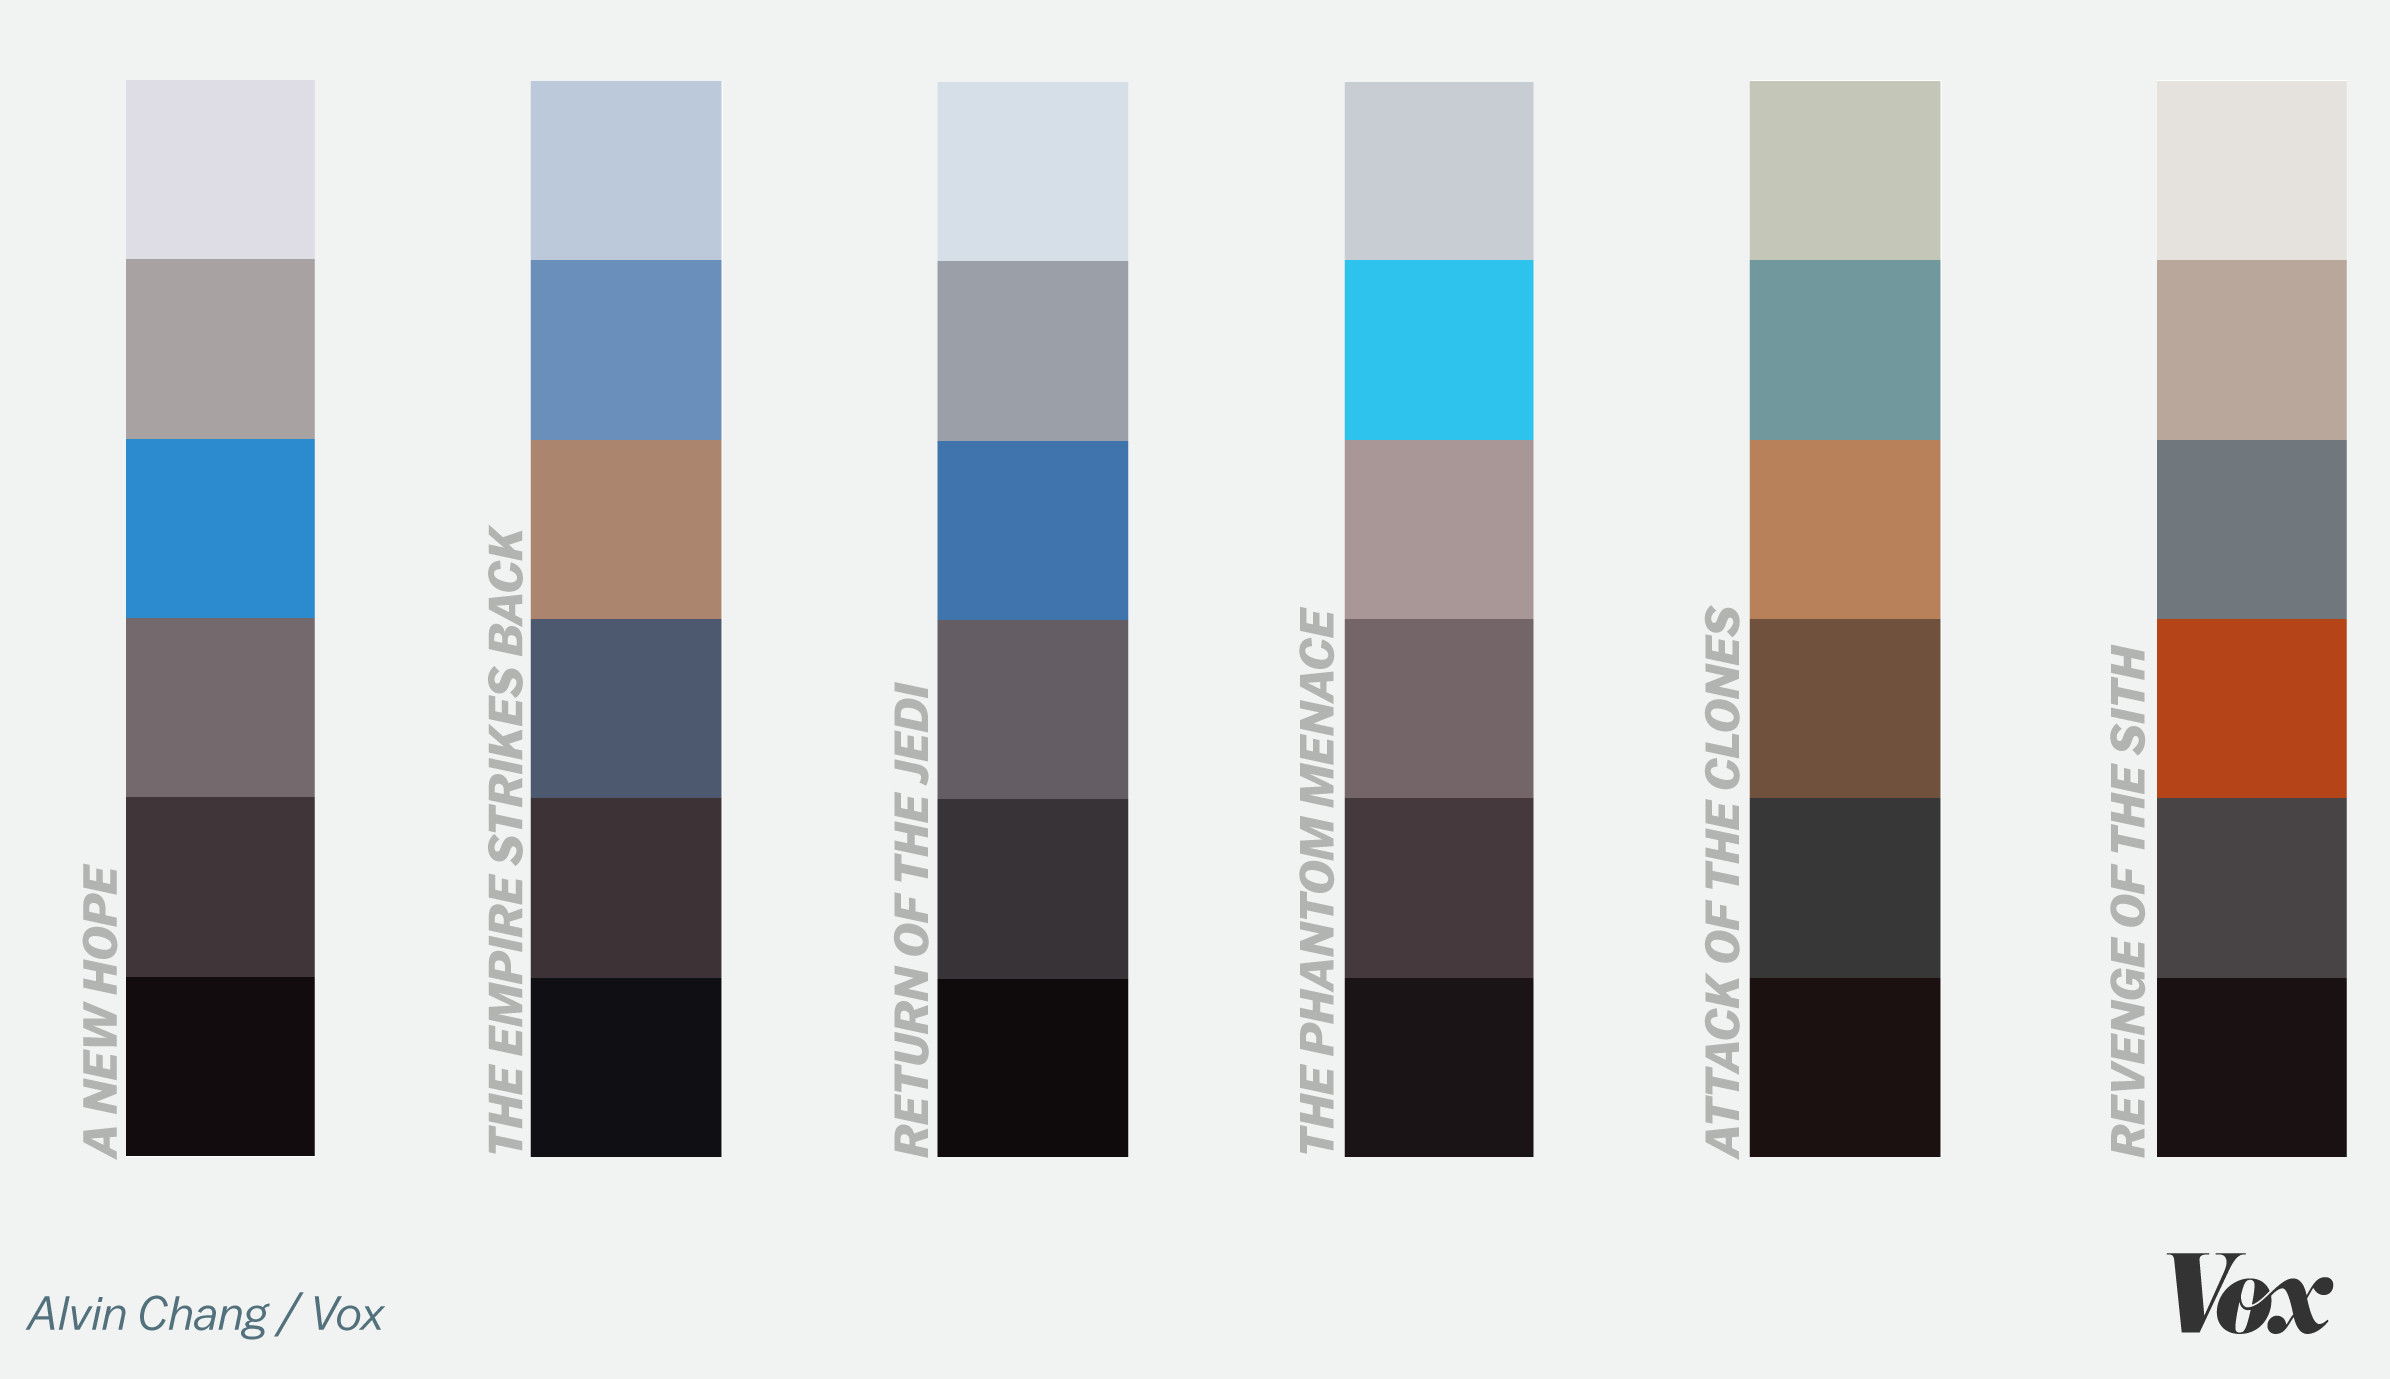 Every Star Wars Movie According To Its Colors